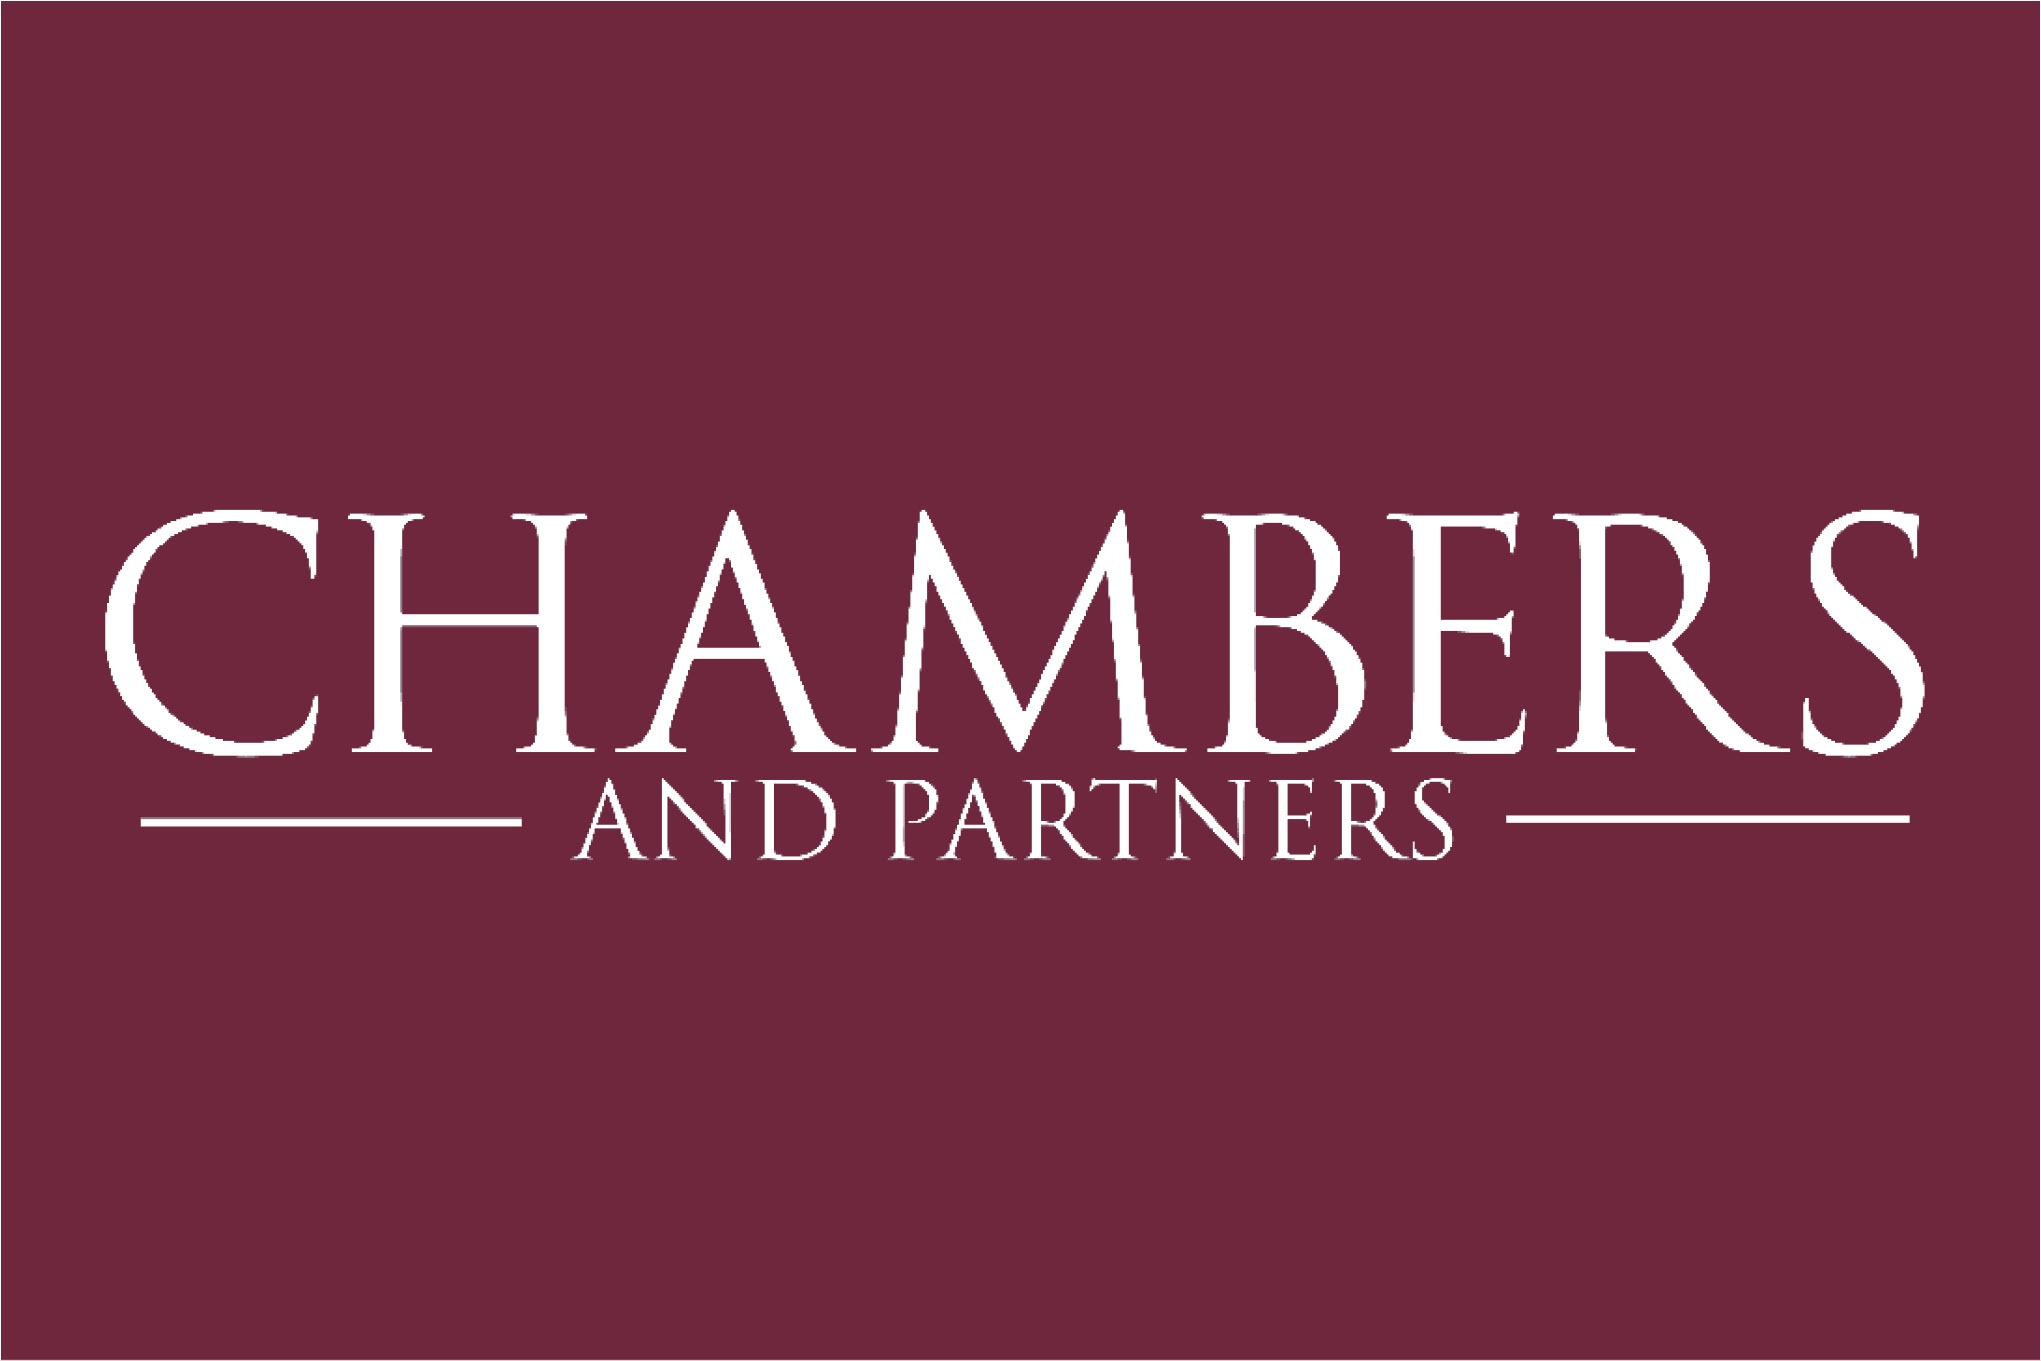 Anderson Strathern shines in Chambers 2020 with six departments and eight individuals ranked Band 1